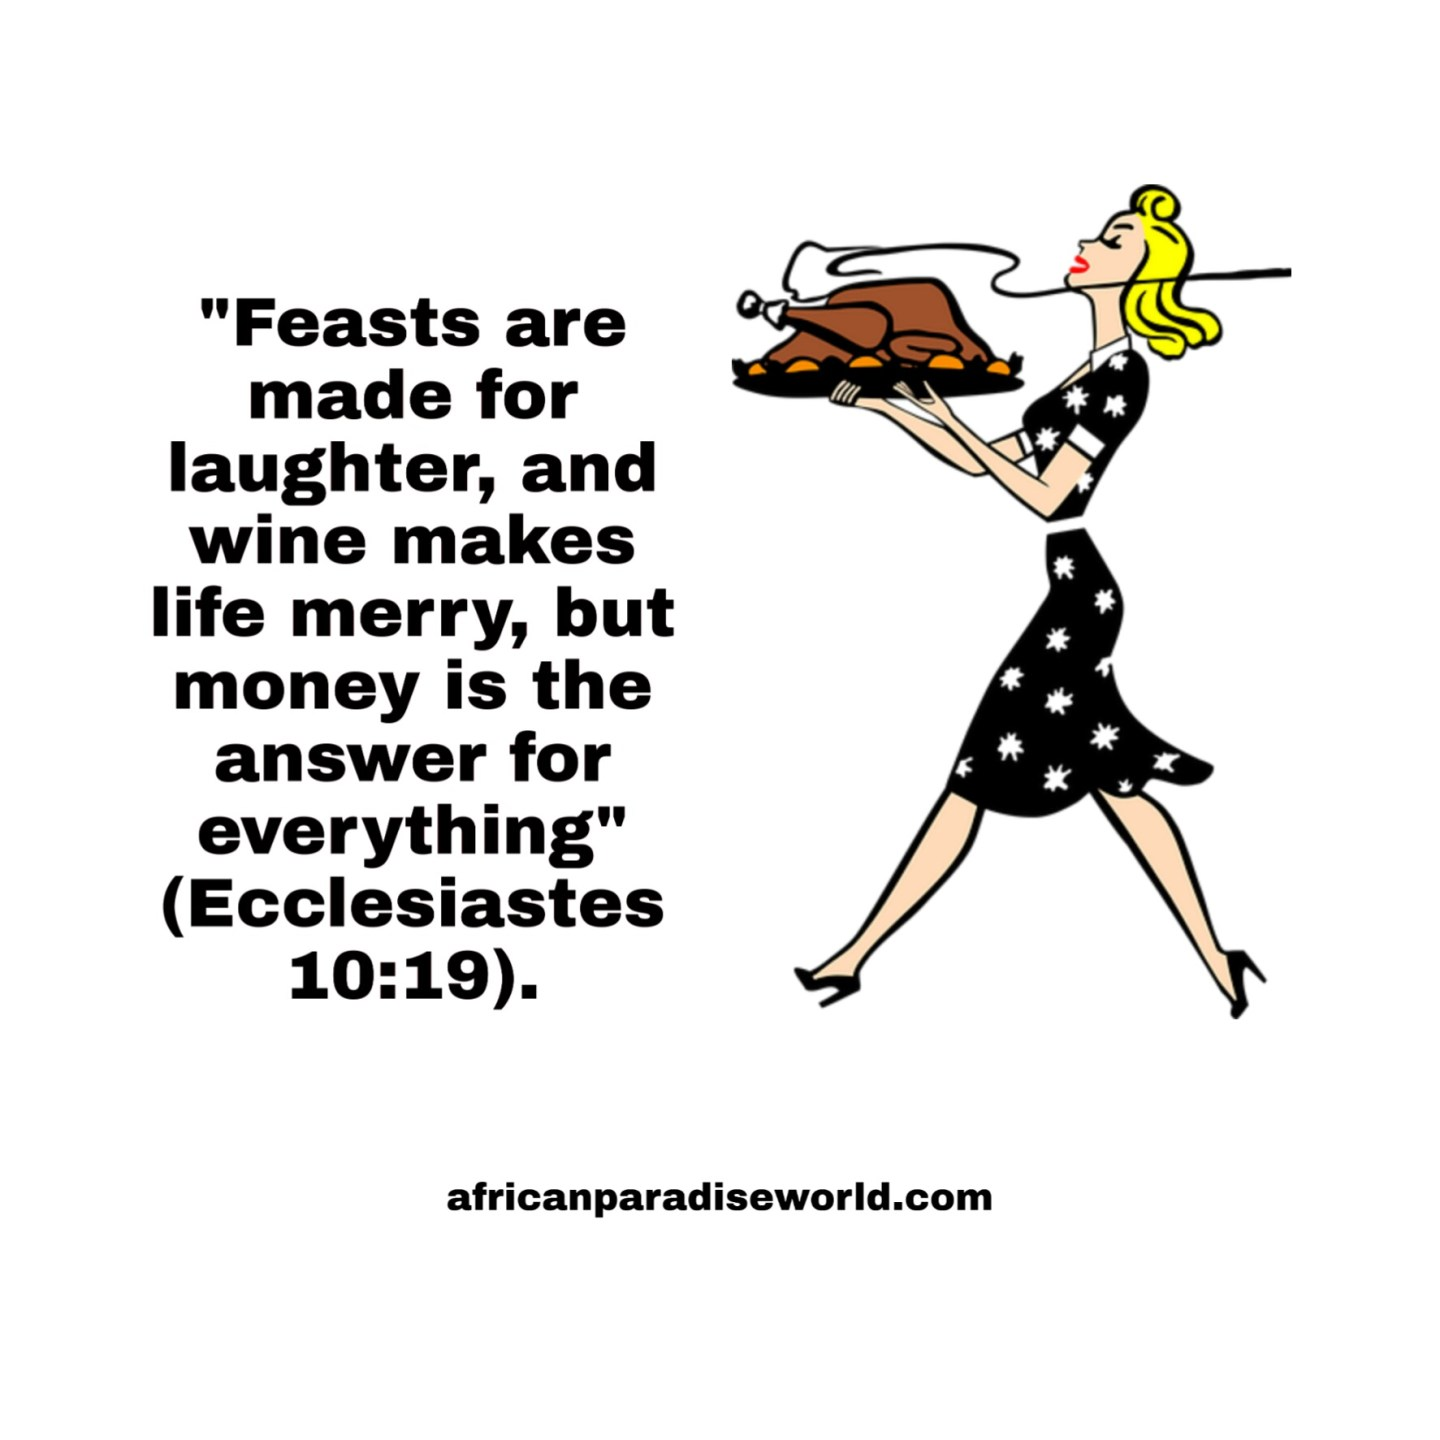 Feasting and enjoyment Bible verse